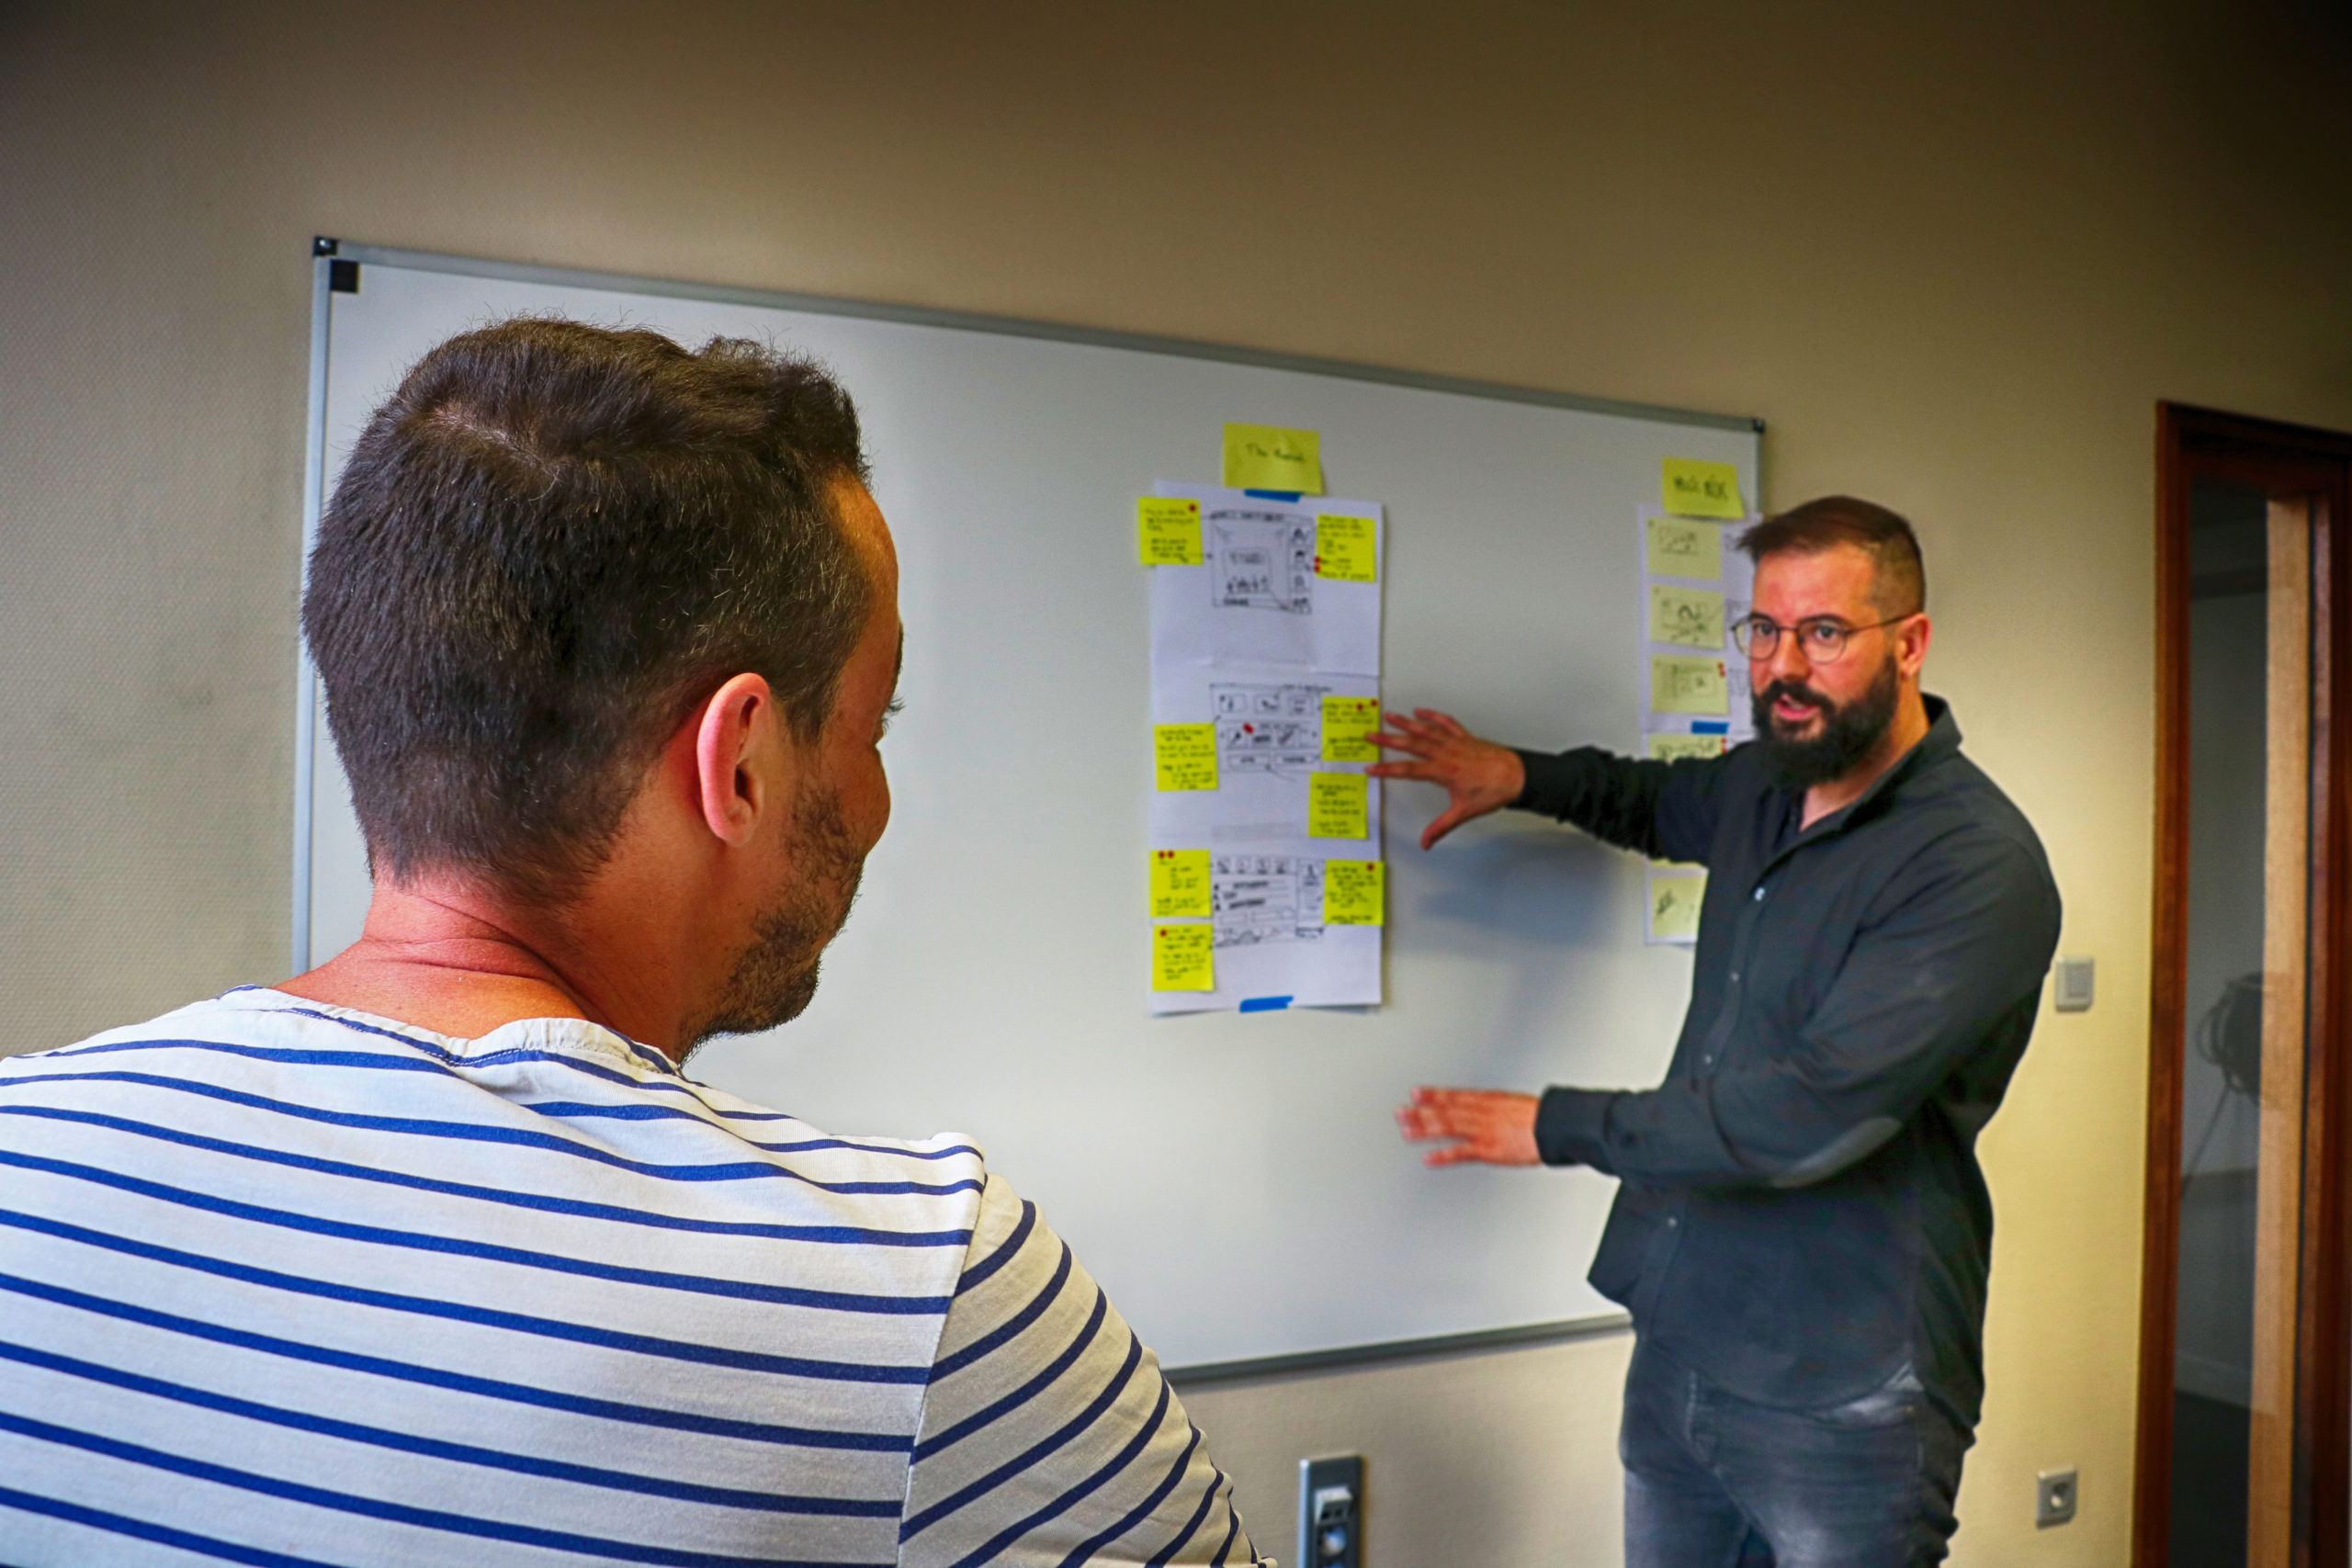 design sprint explanation